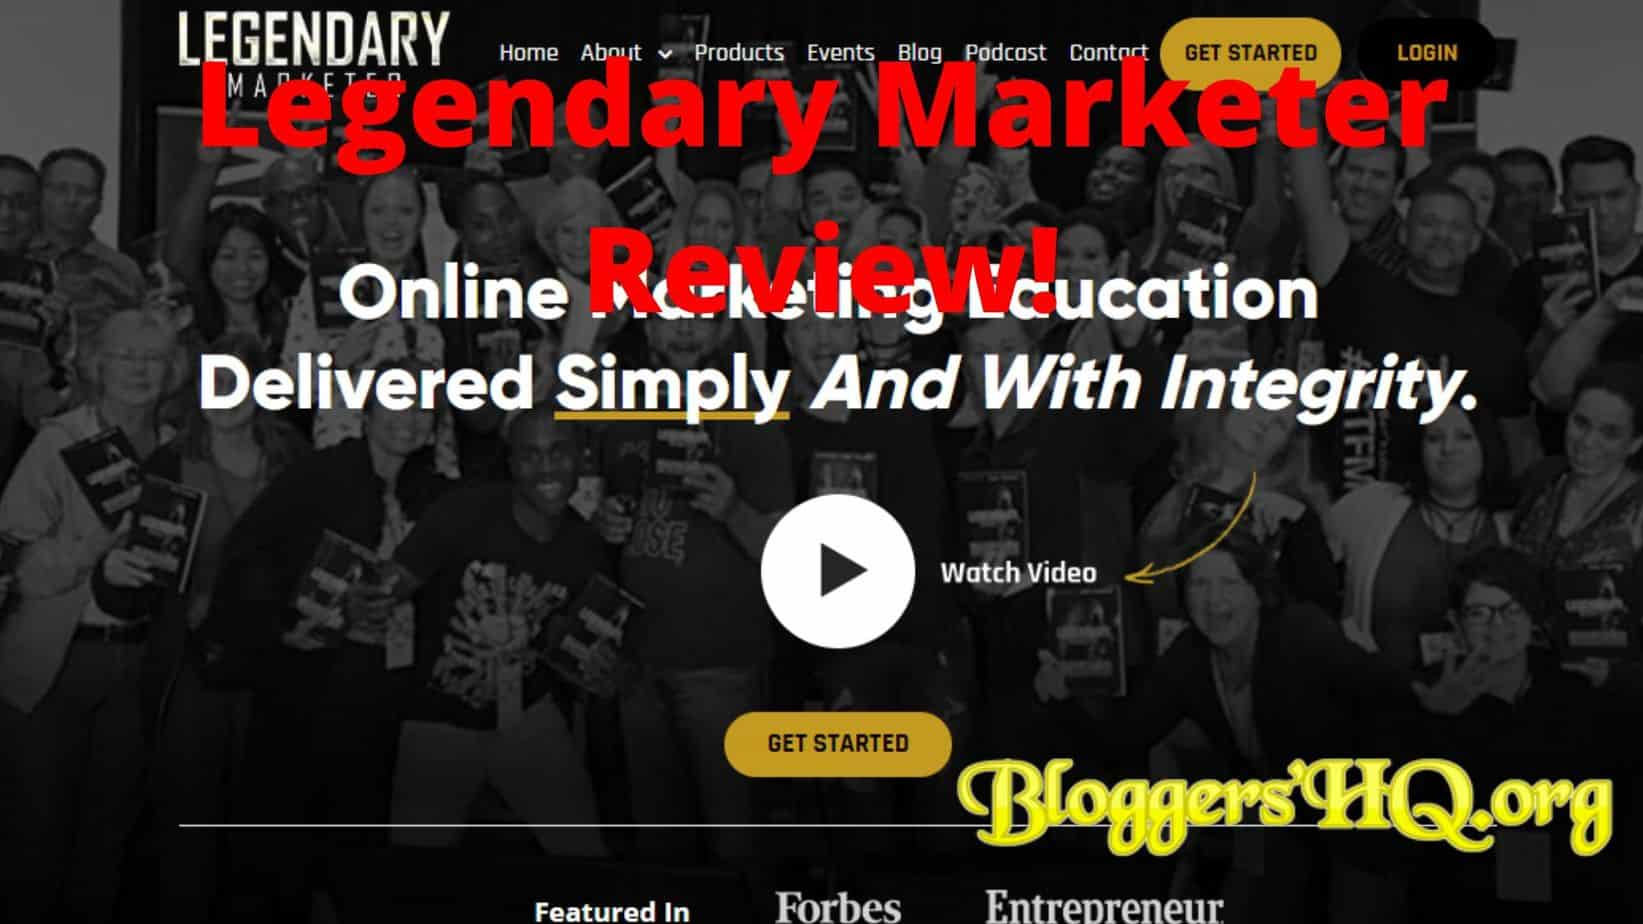 Annual Plan Promo Code Legendary Marketer